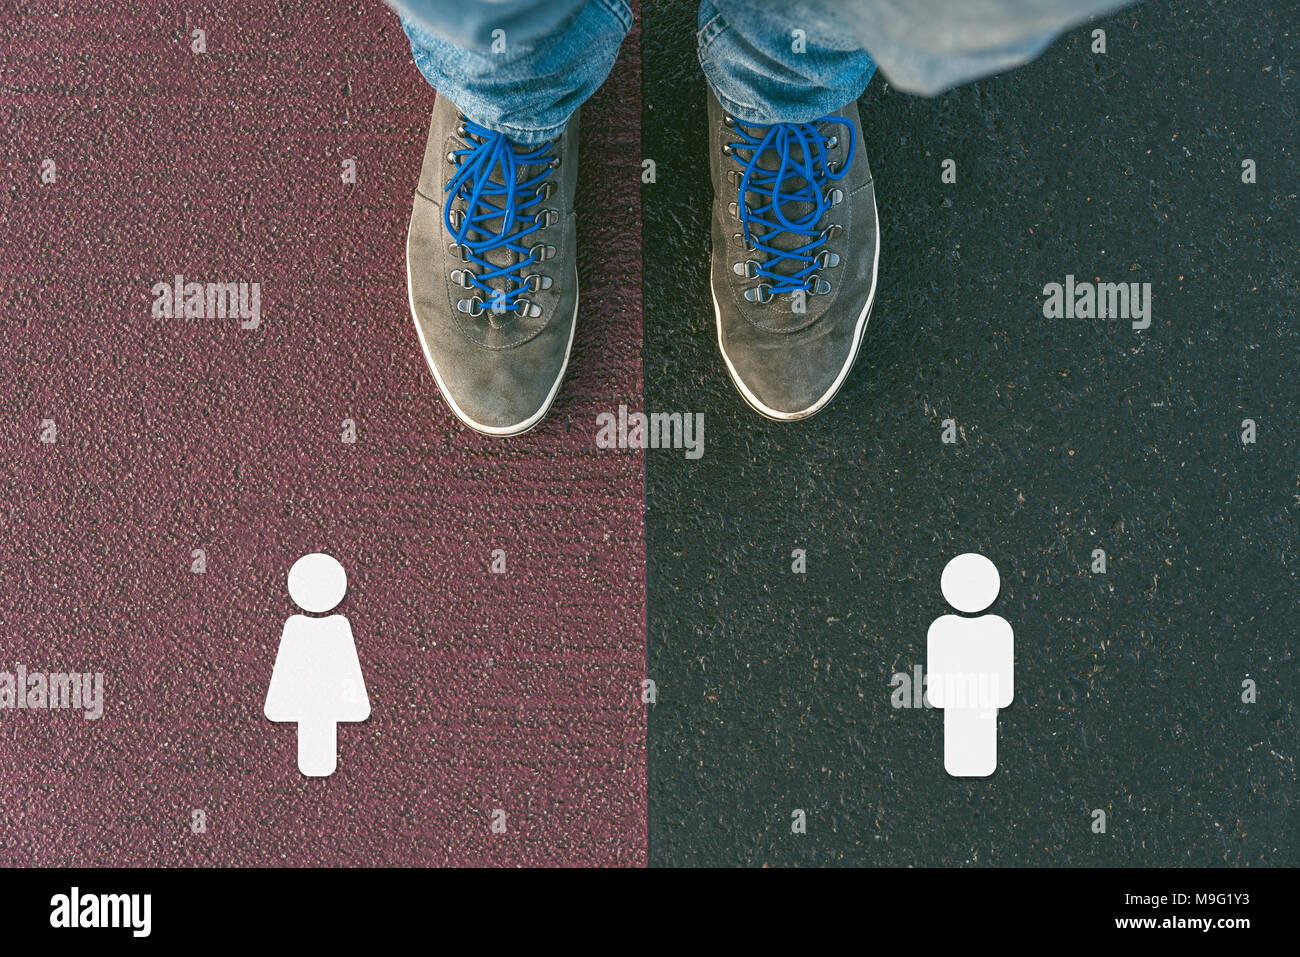 Gender gap between man and woman in past, now and future symbolized by two feet standing on two different colors with arrows on pathway from above - Stock Image